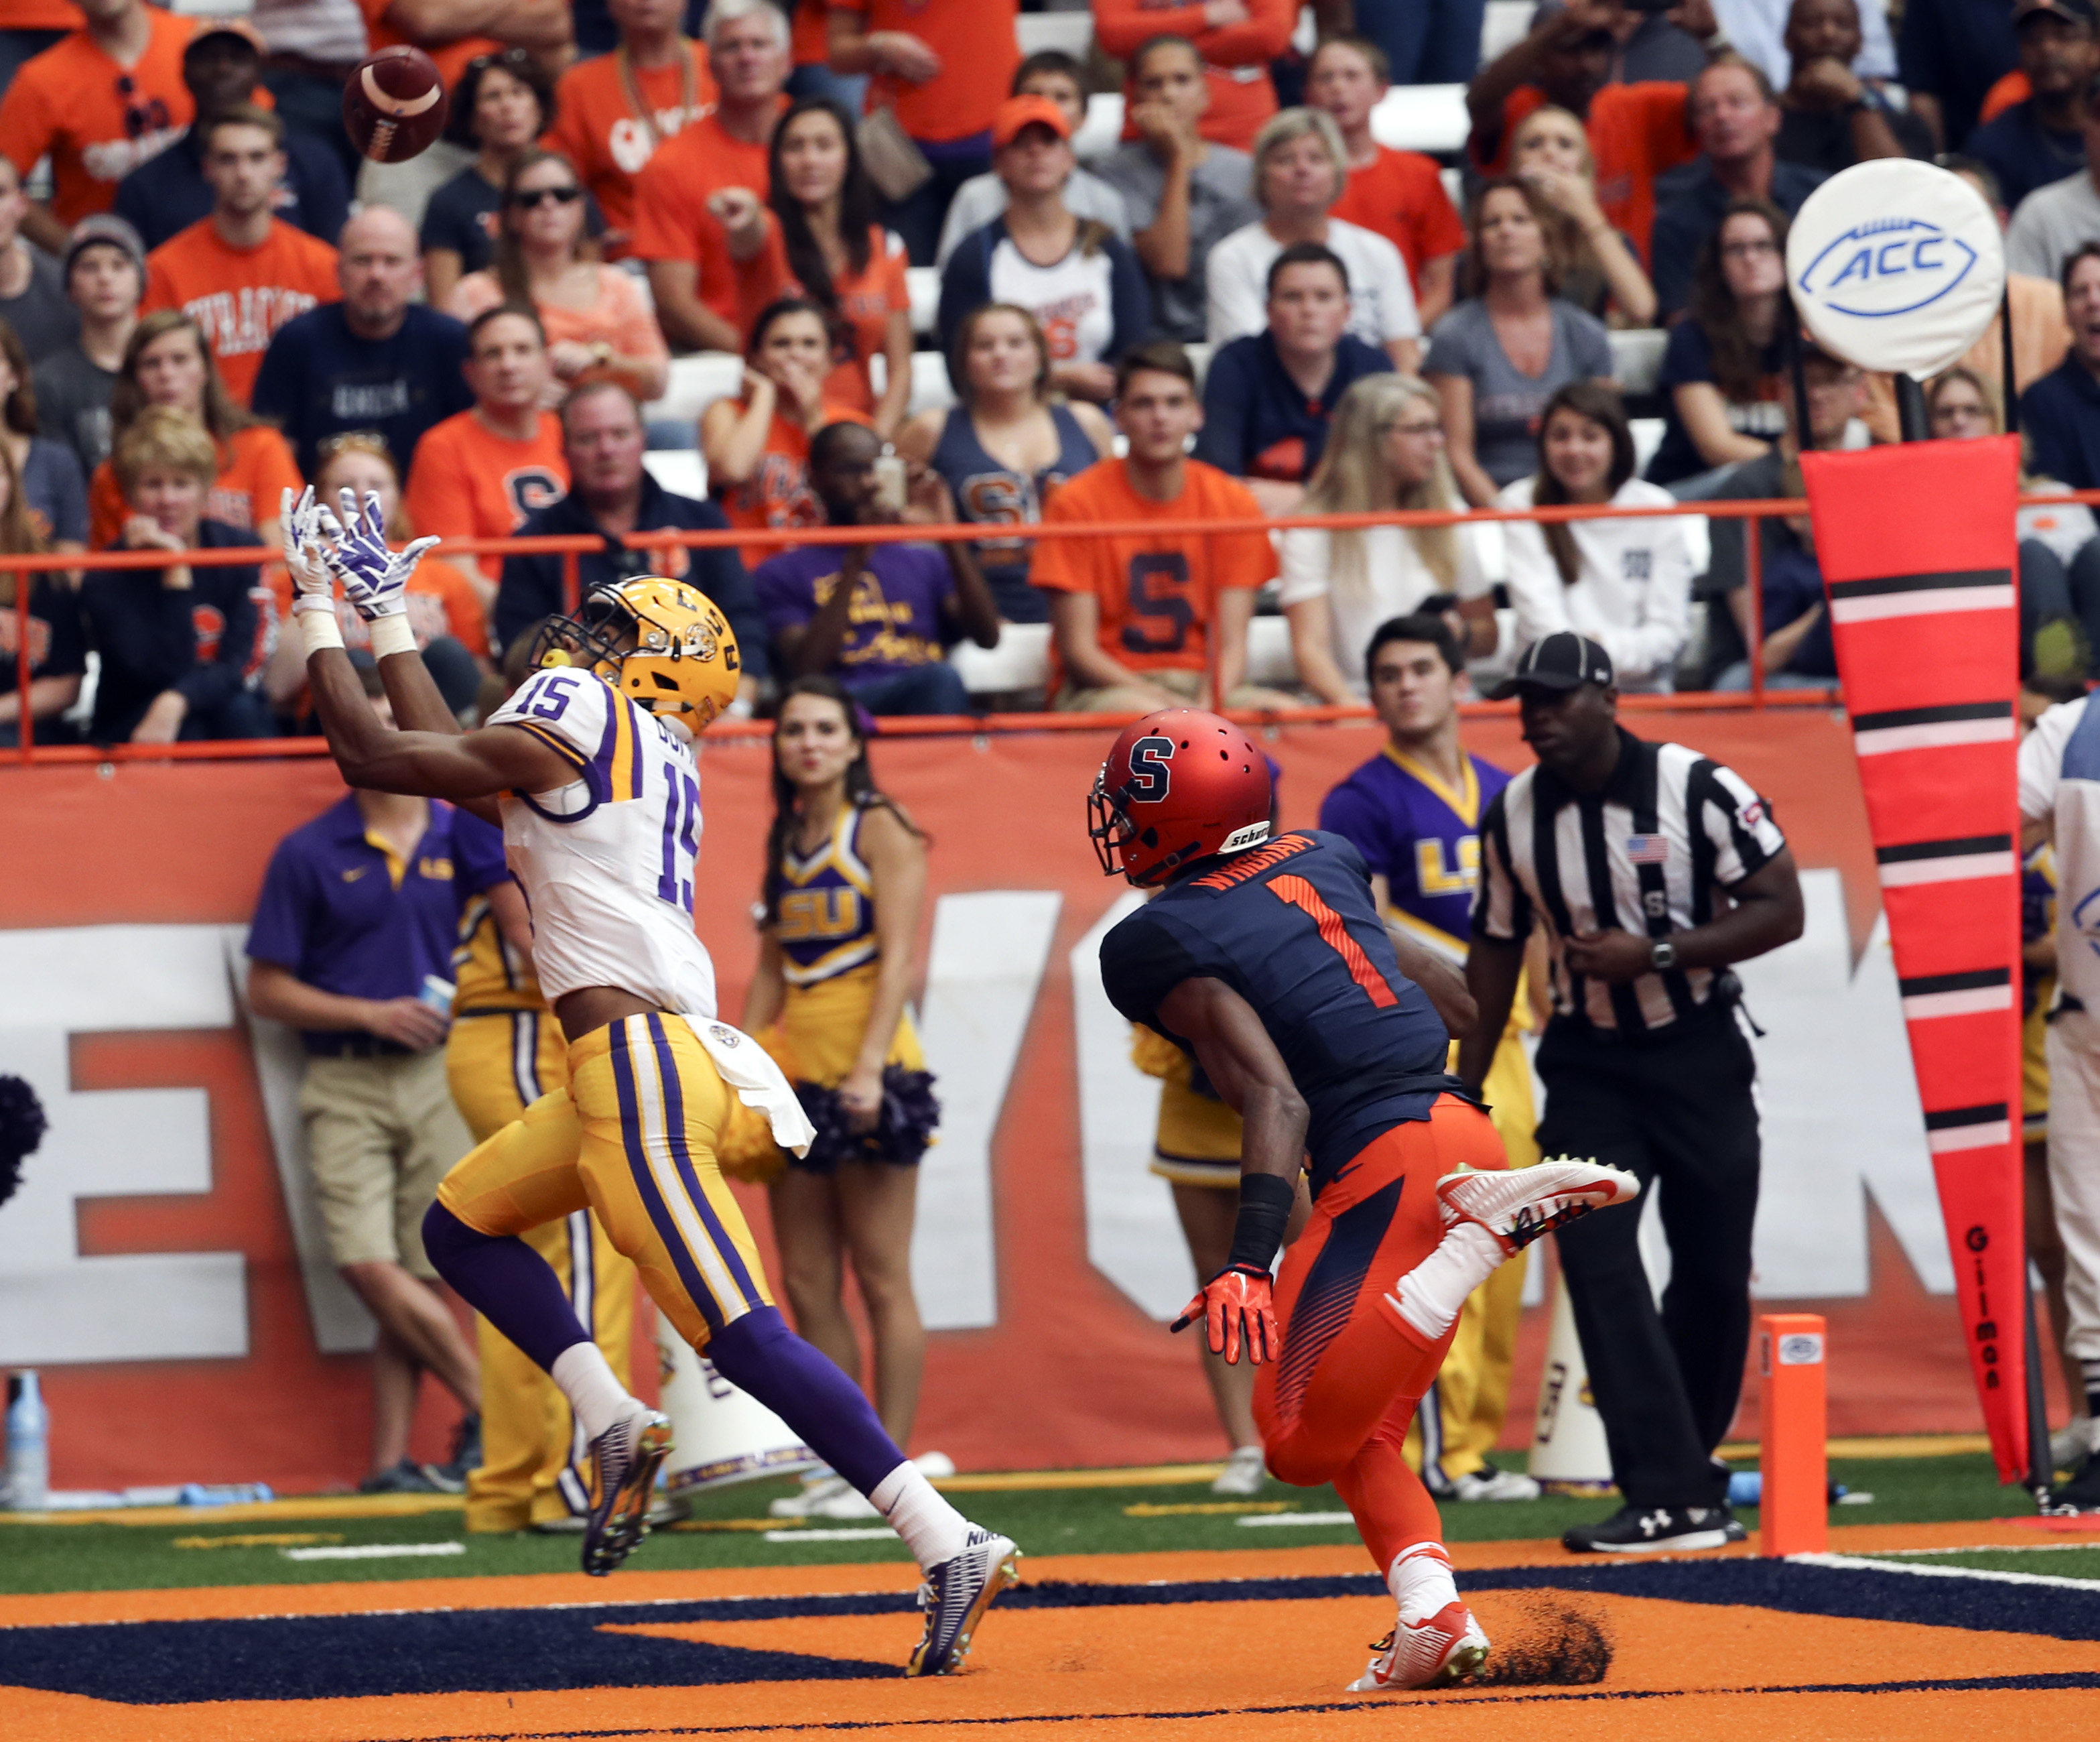 LSU wide receiver Malachi Dupre (15) makes a touchdown reception in front of Syracuse cornerback Julian Whigham (1) during the second half of an NCAA college football game on Saturday, Sept. 26, 2015, in Syracuse, N.Y. (AP Photo/Mike Groll)